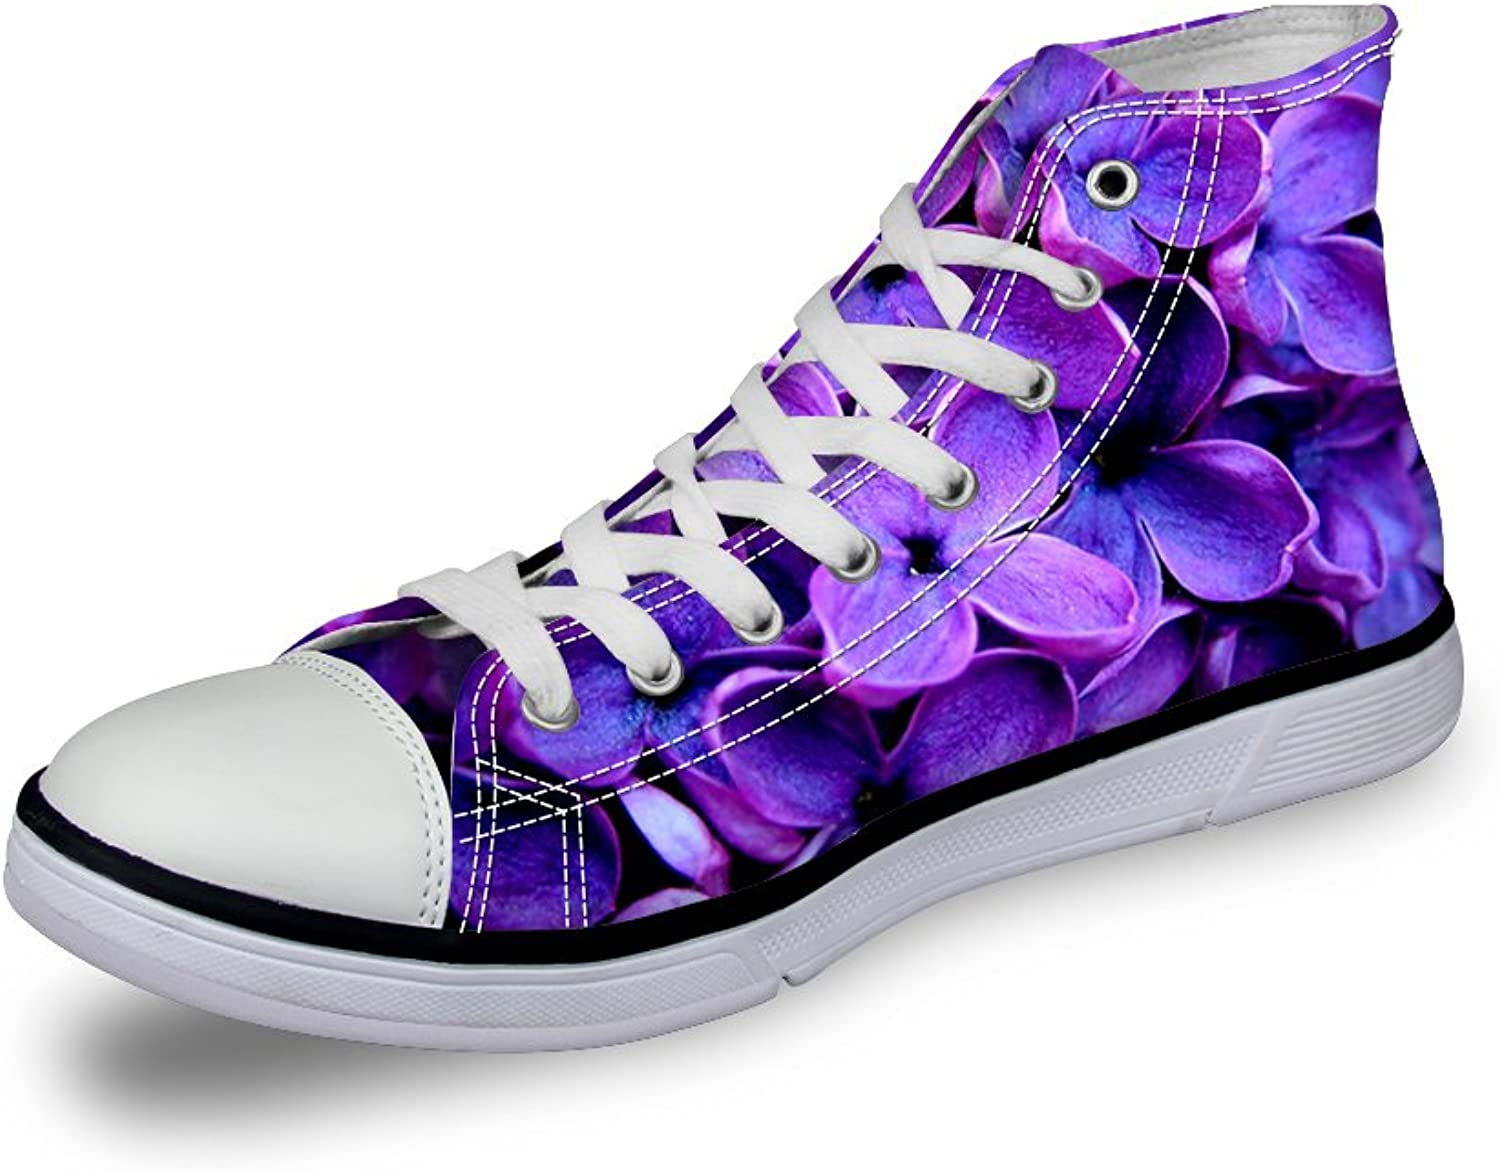 Frestree Casual Walking Athletic shoes Unique Gifts for Women and Girls